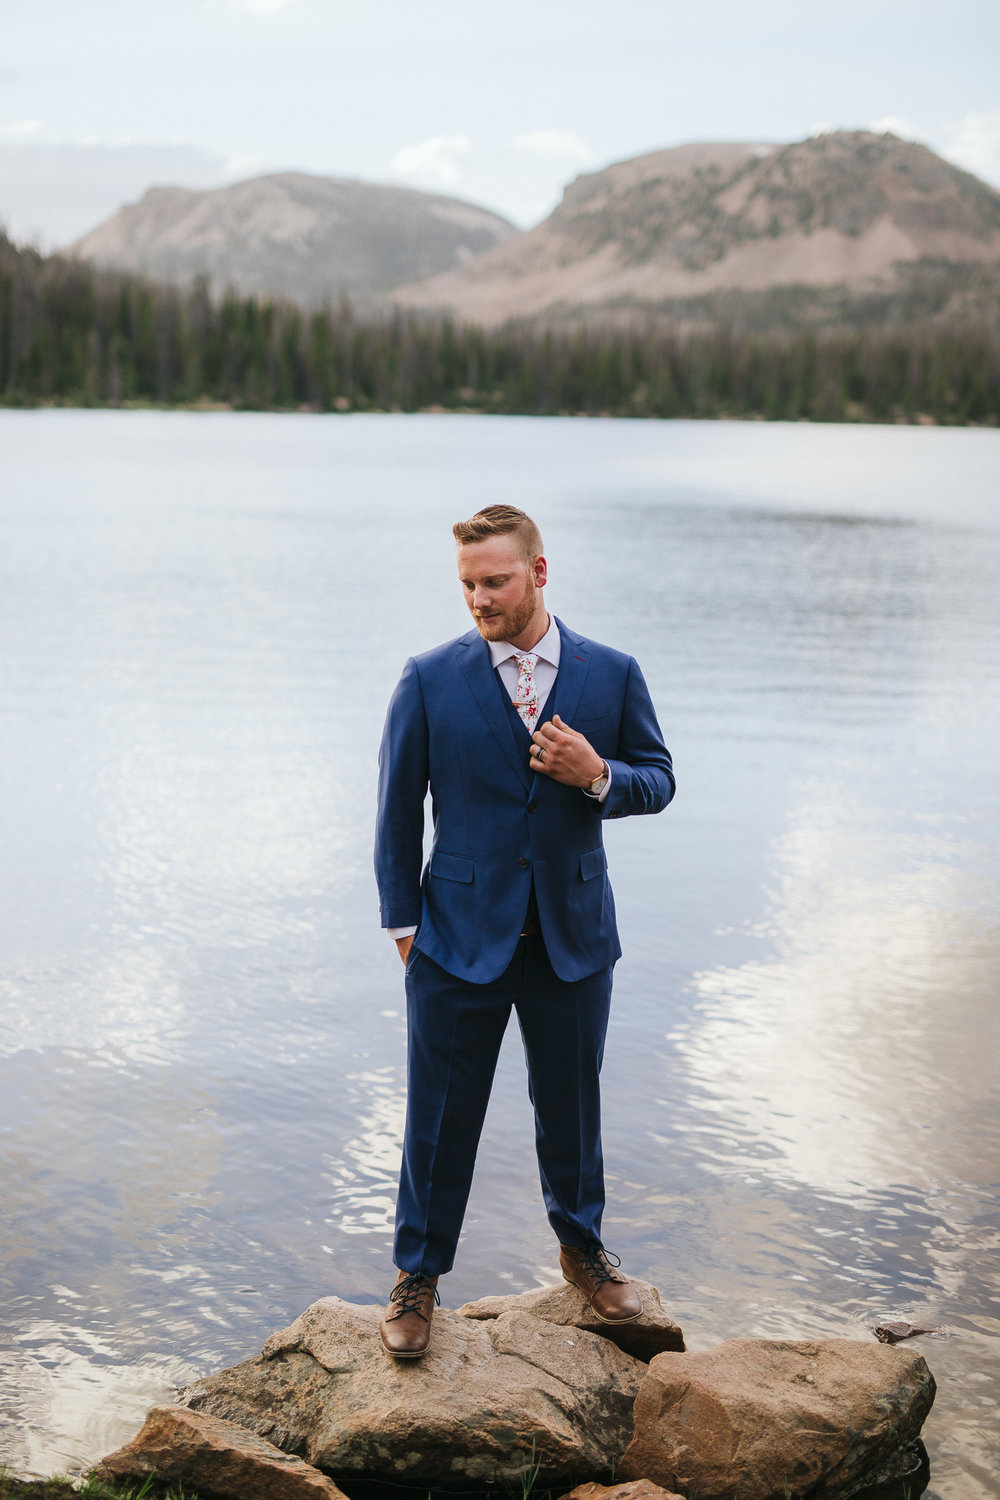 Groom poses for wedding photos at Mirror Lake in the Utah Mountains